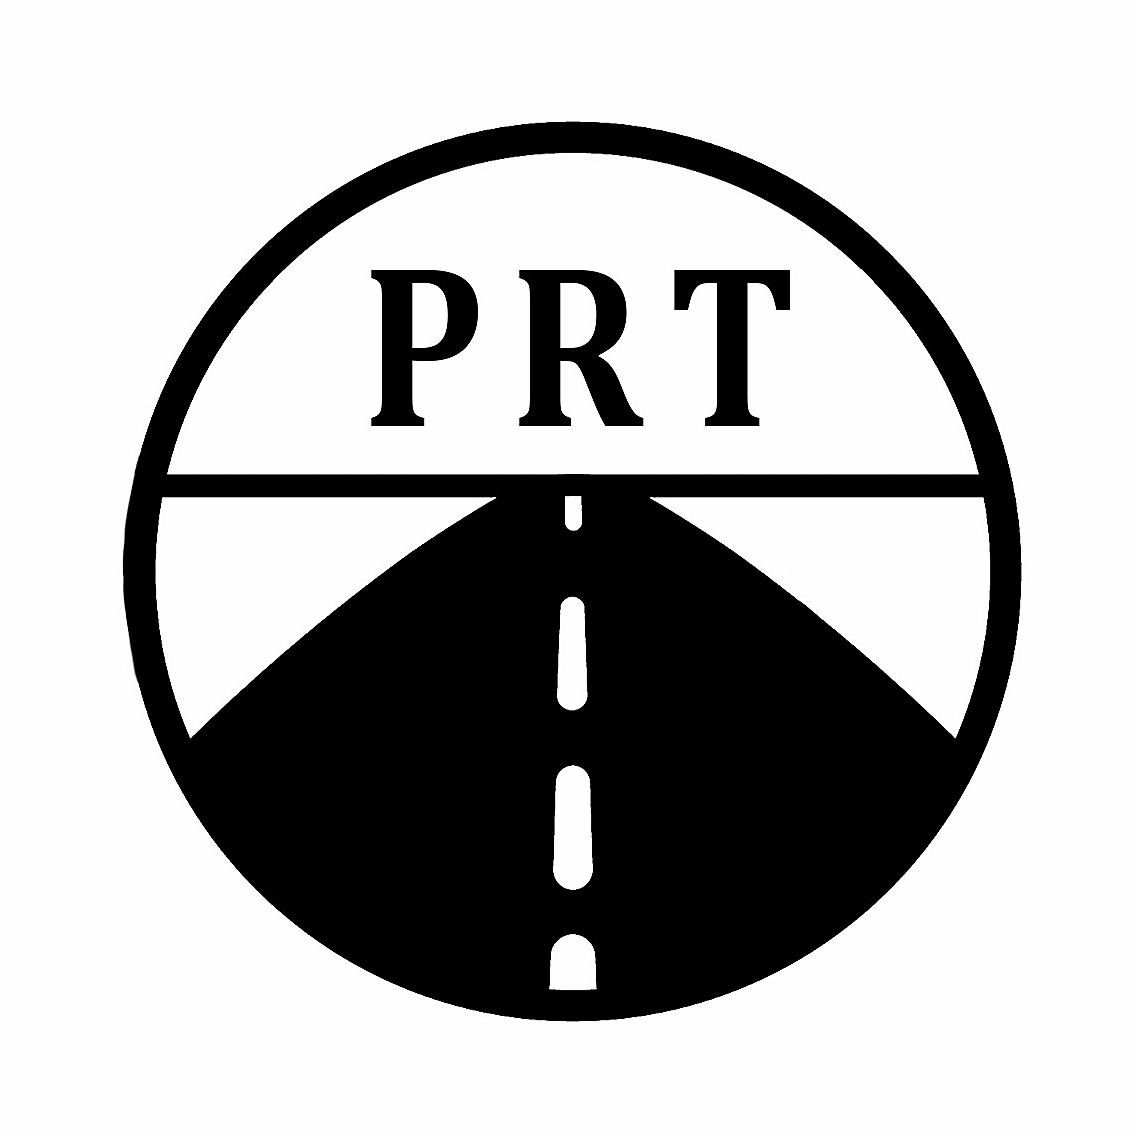 Course reviews and testimonials from some of our grateful students project road training llc for pmp exam prep 1betcityfo Choice Image